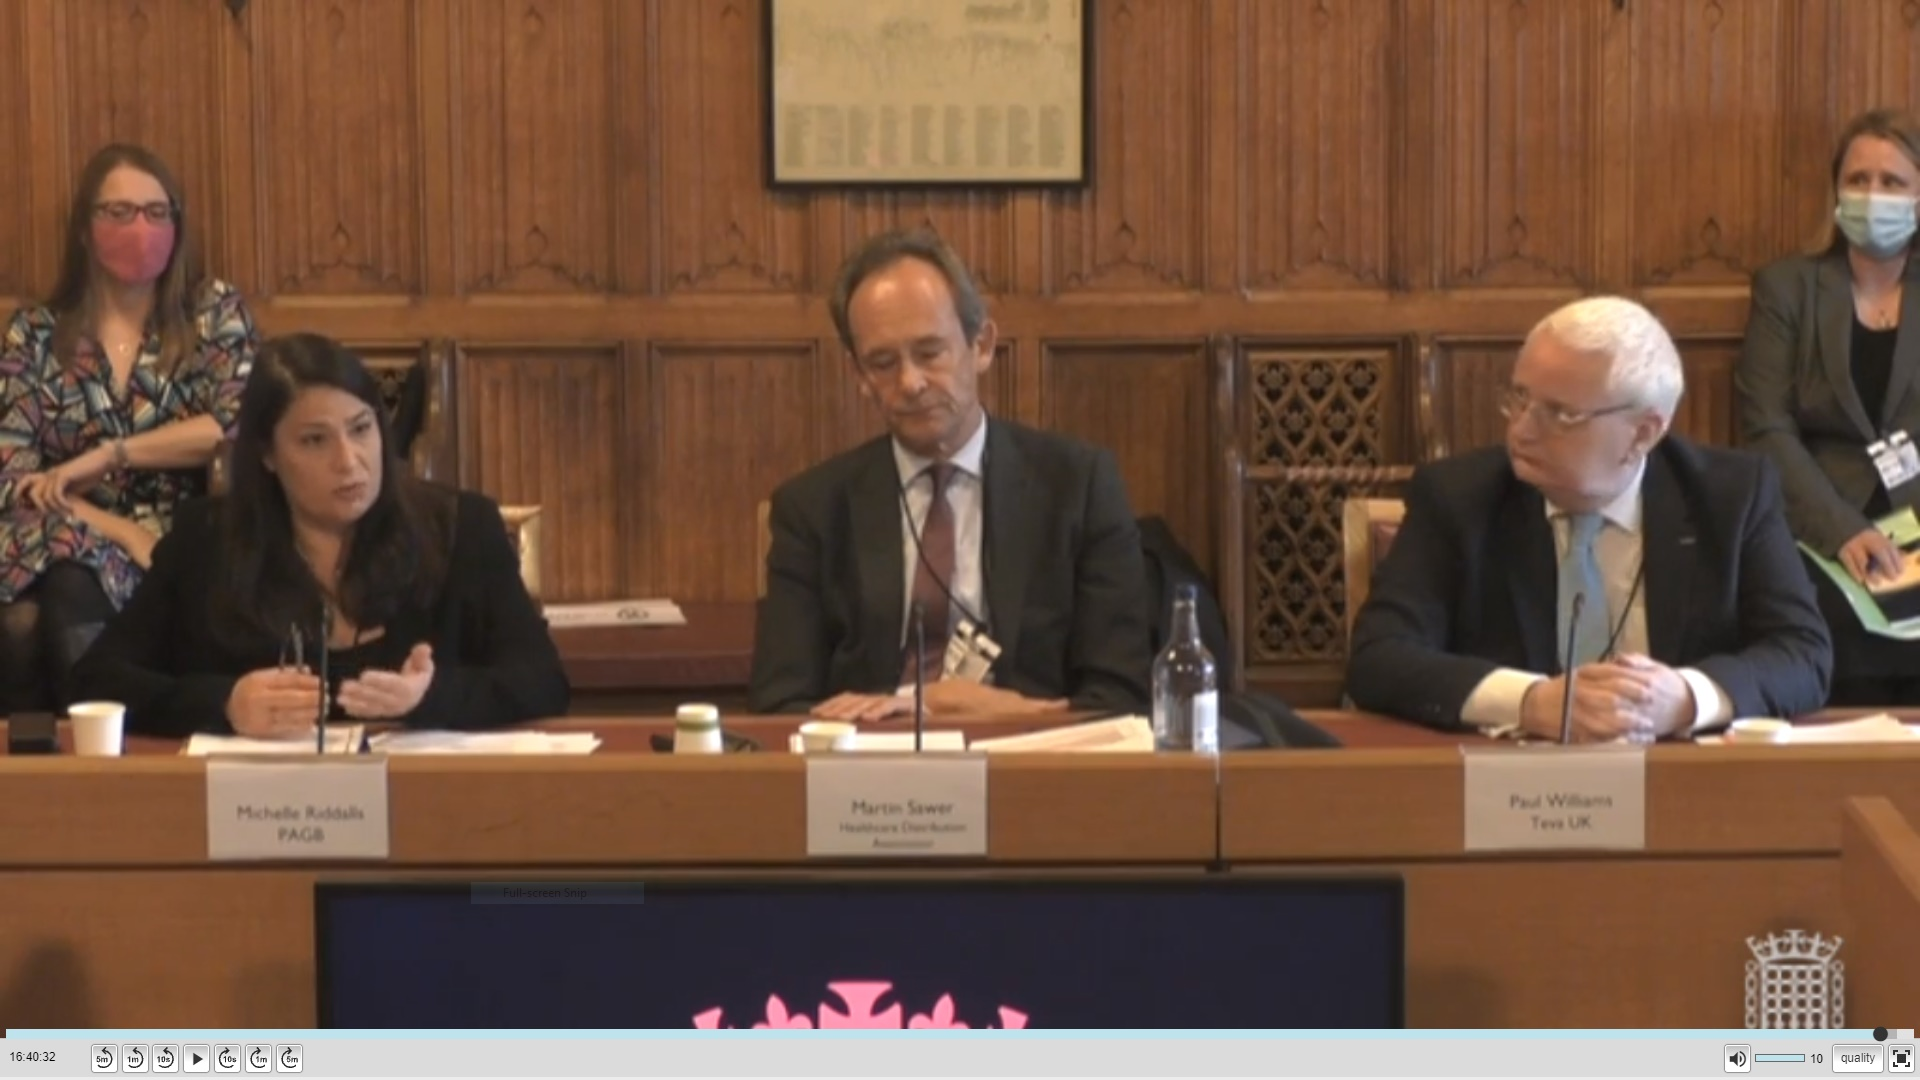 PAGB CEO Michelle Riddalls gives evidence to House of Lords committee